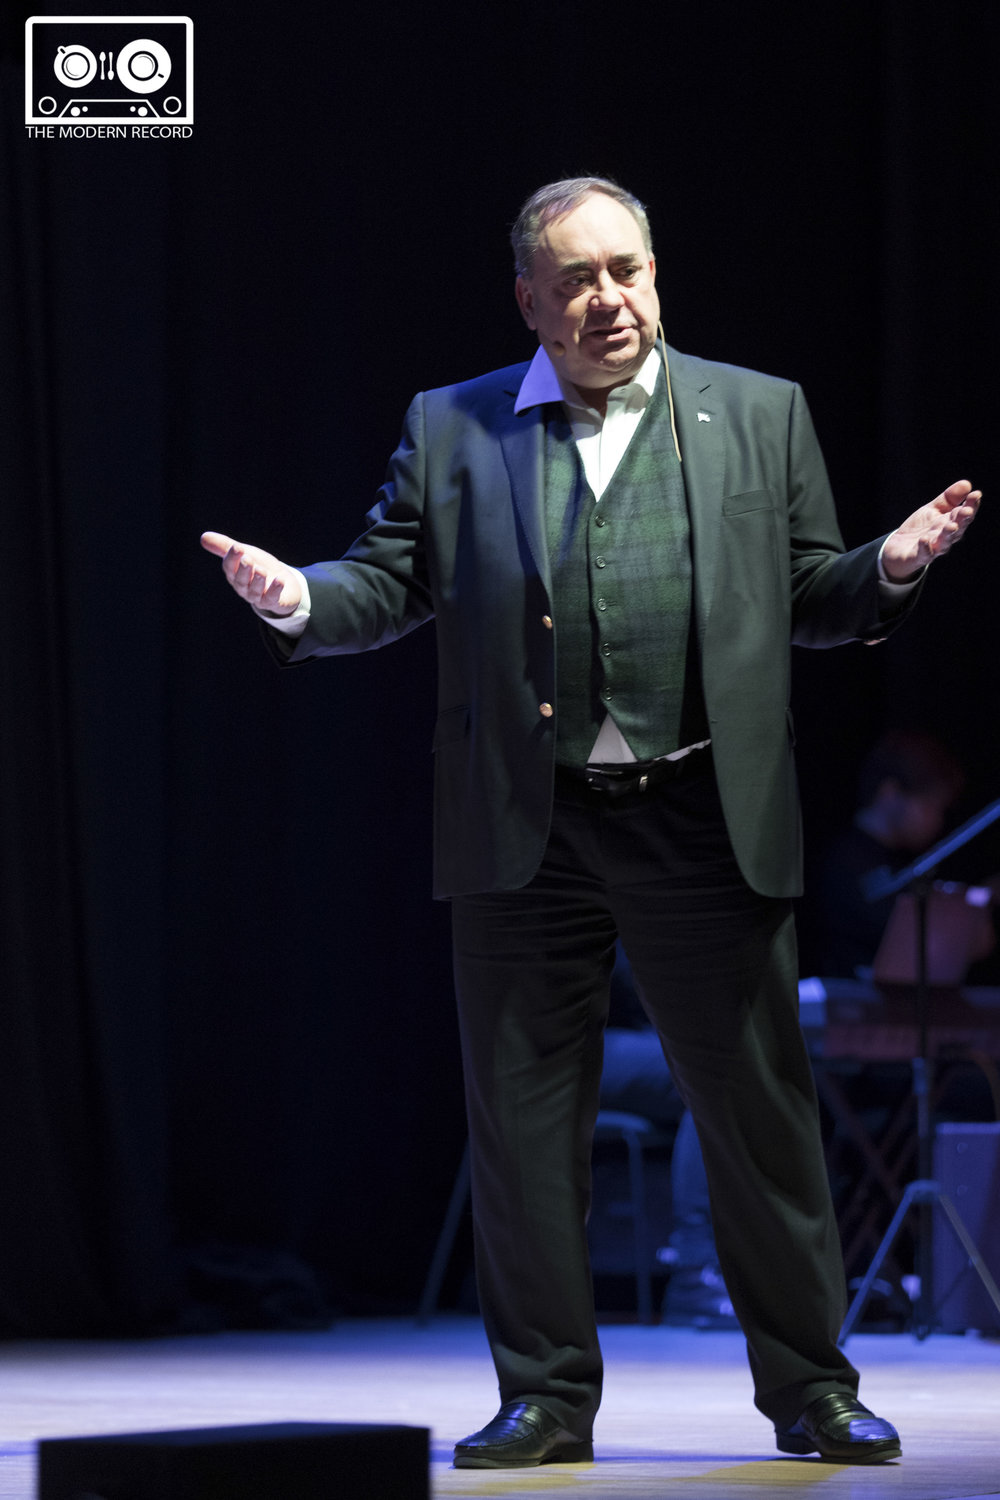 Alex Salmond in Dundee at the Caird Hall-15.jpg